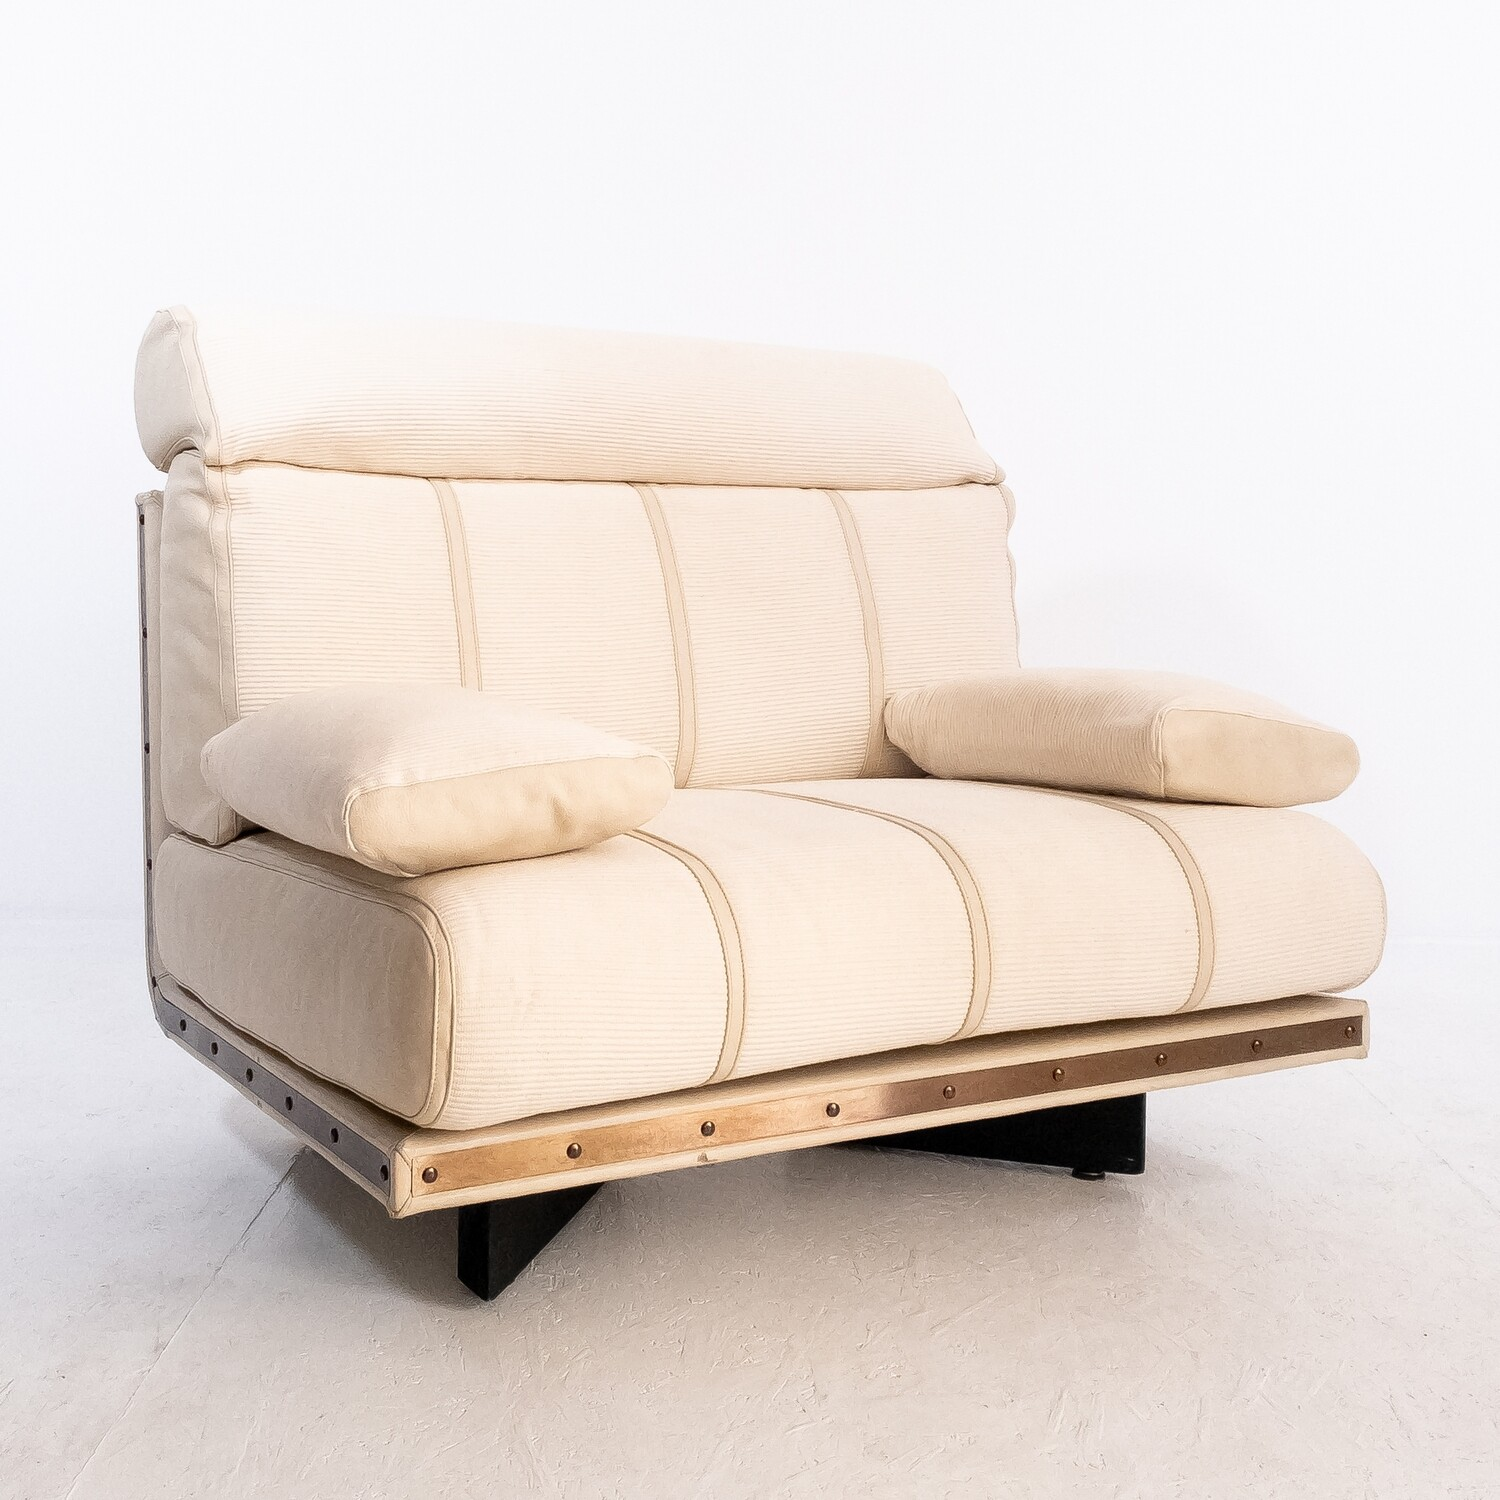 Derby armchair design Nicola Trussardi for Busnelli Study & Research Center, Italy 1983